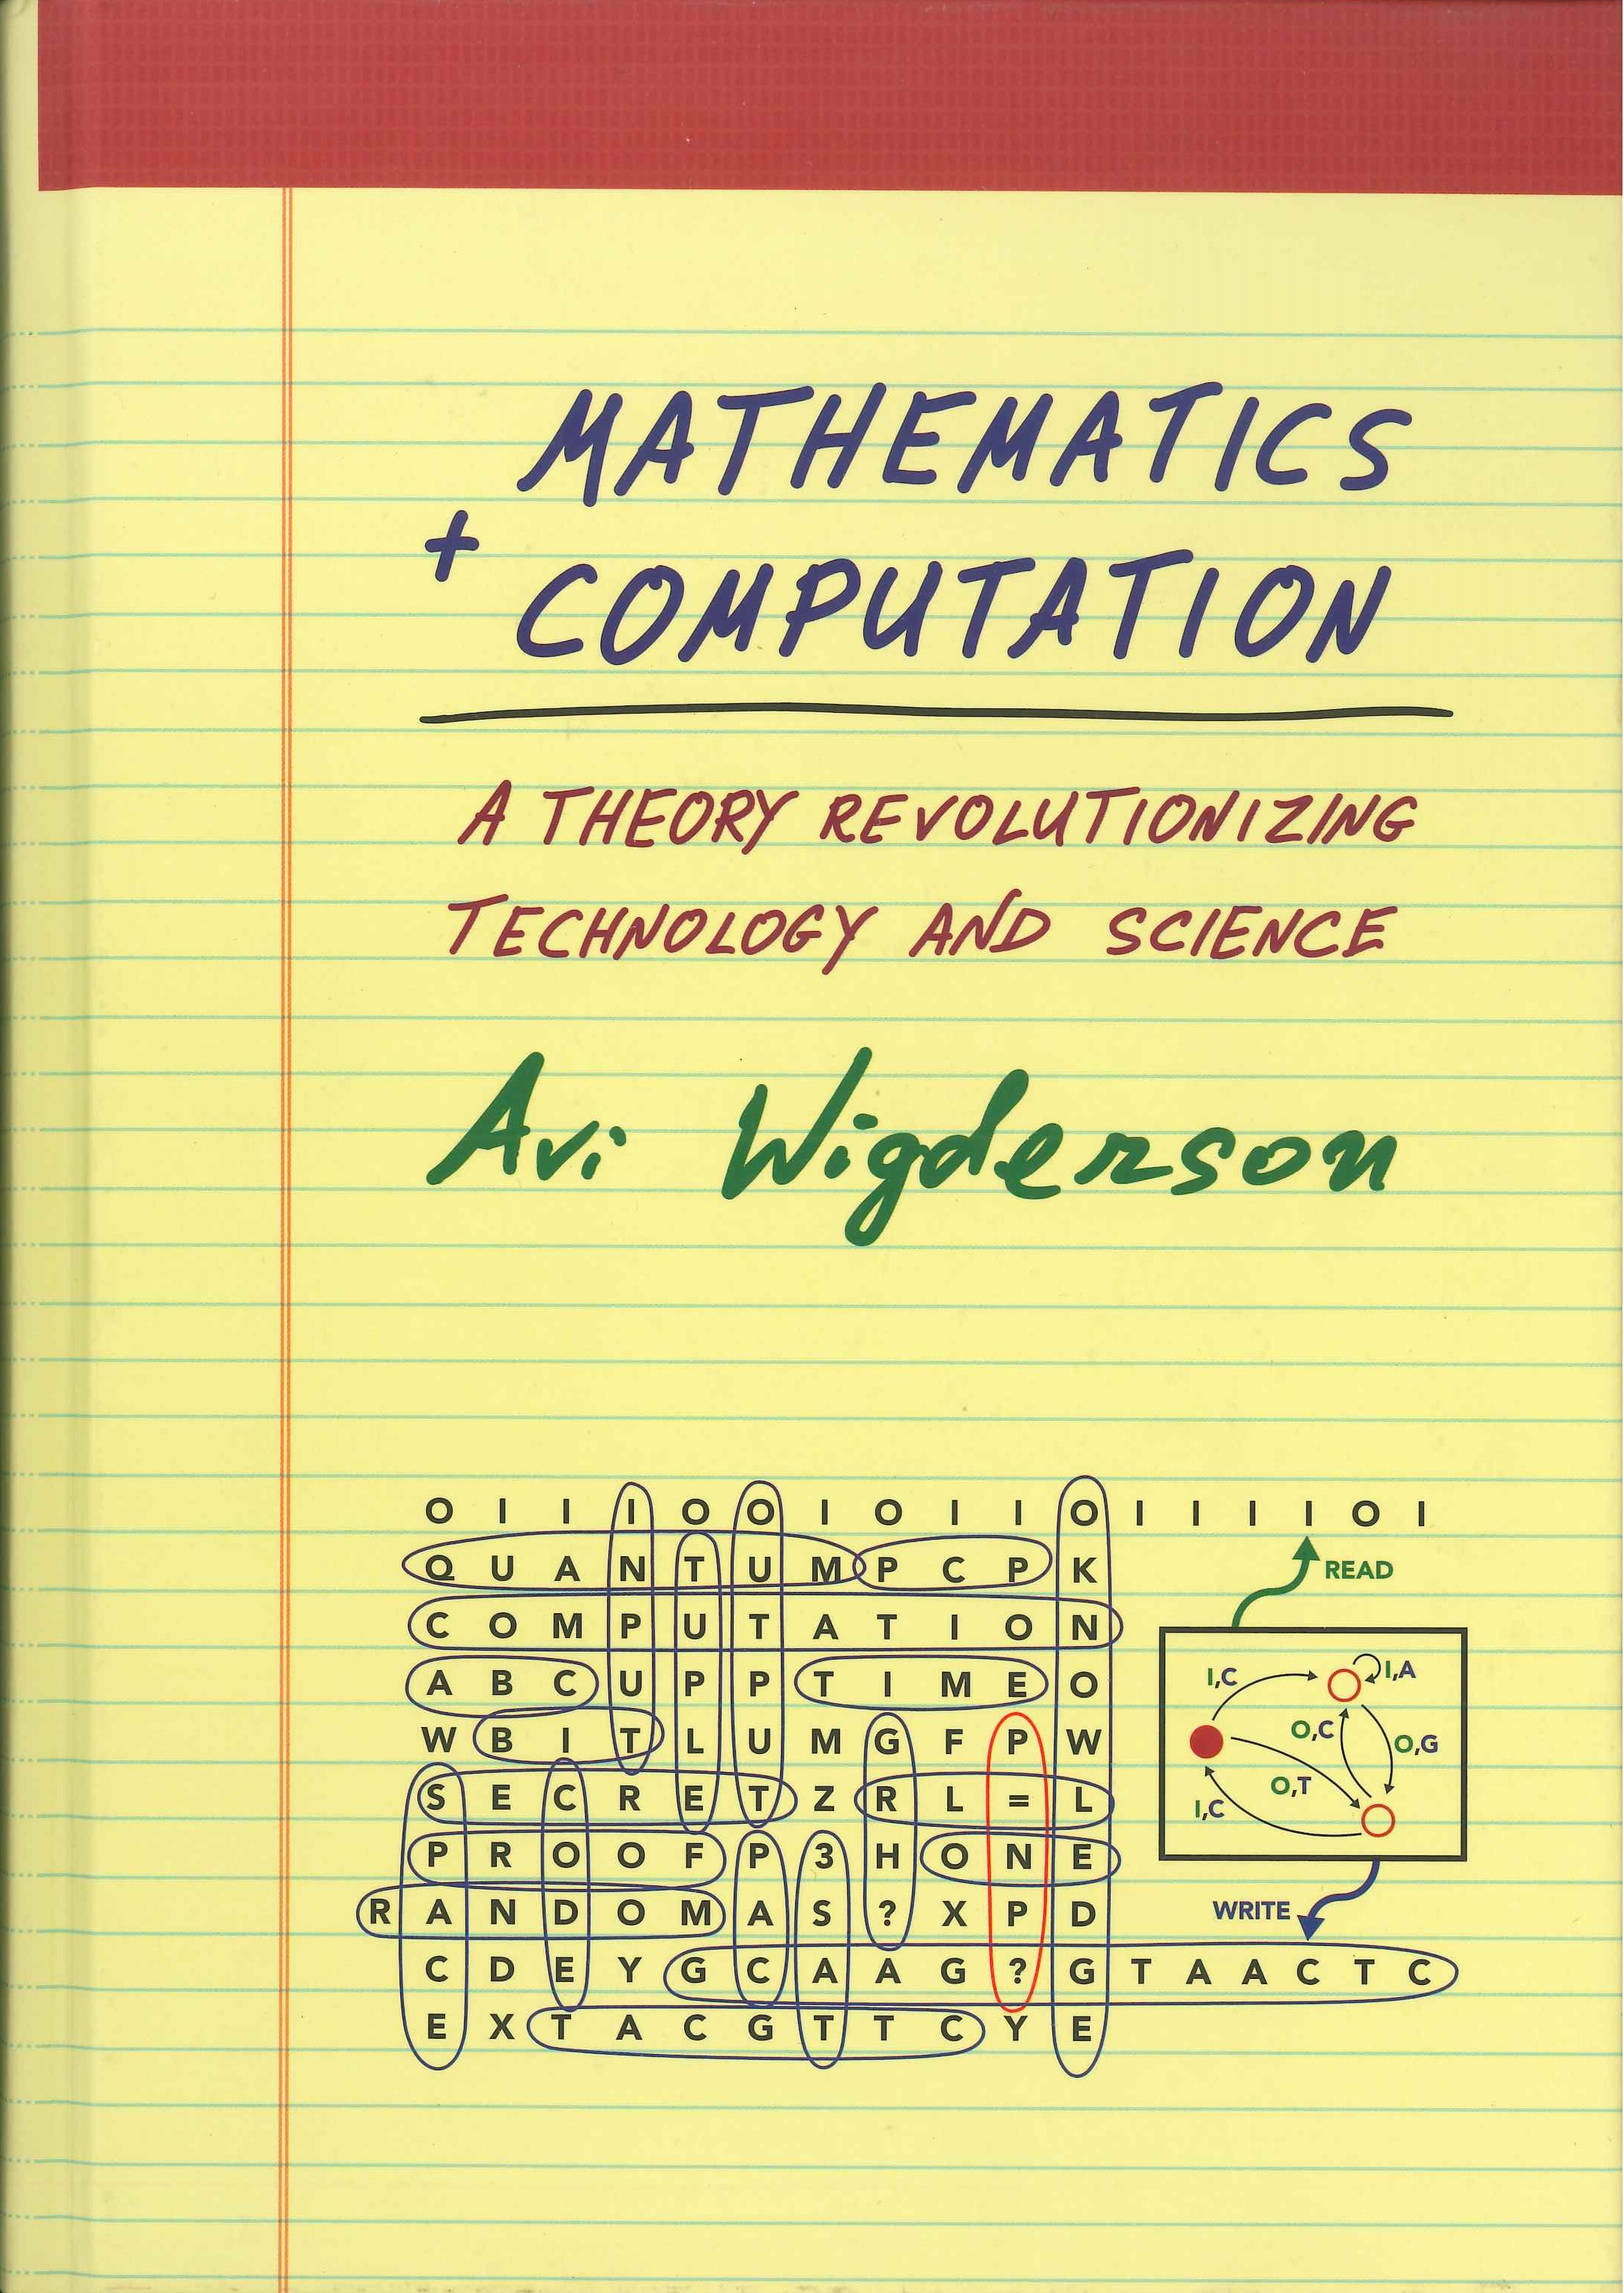 Mathematics and computation:a theory revolutionizing technology and science